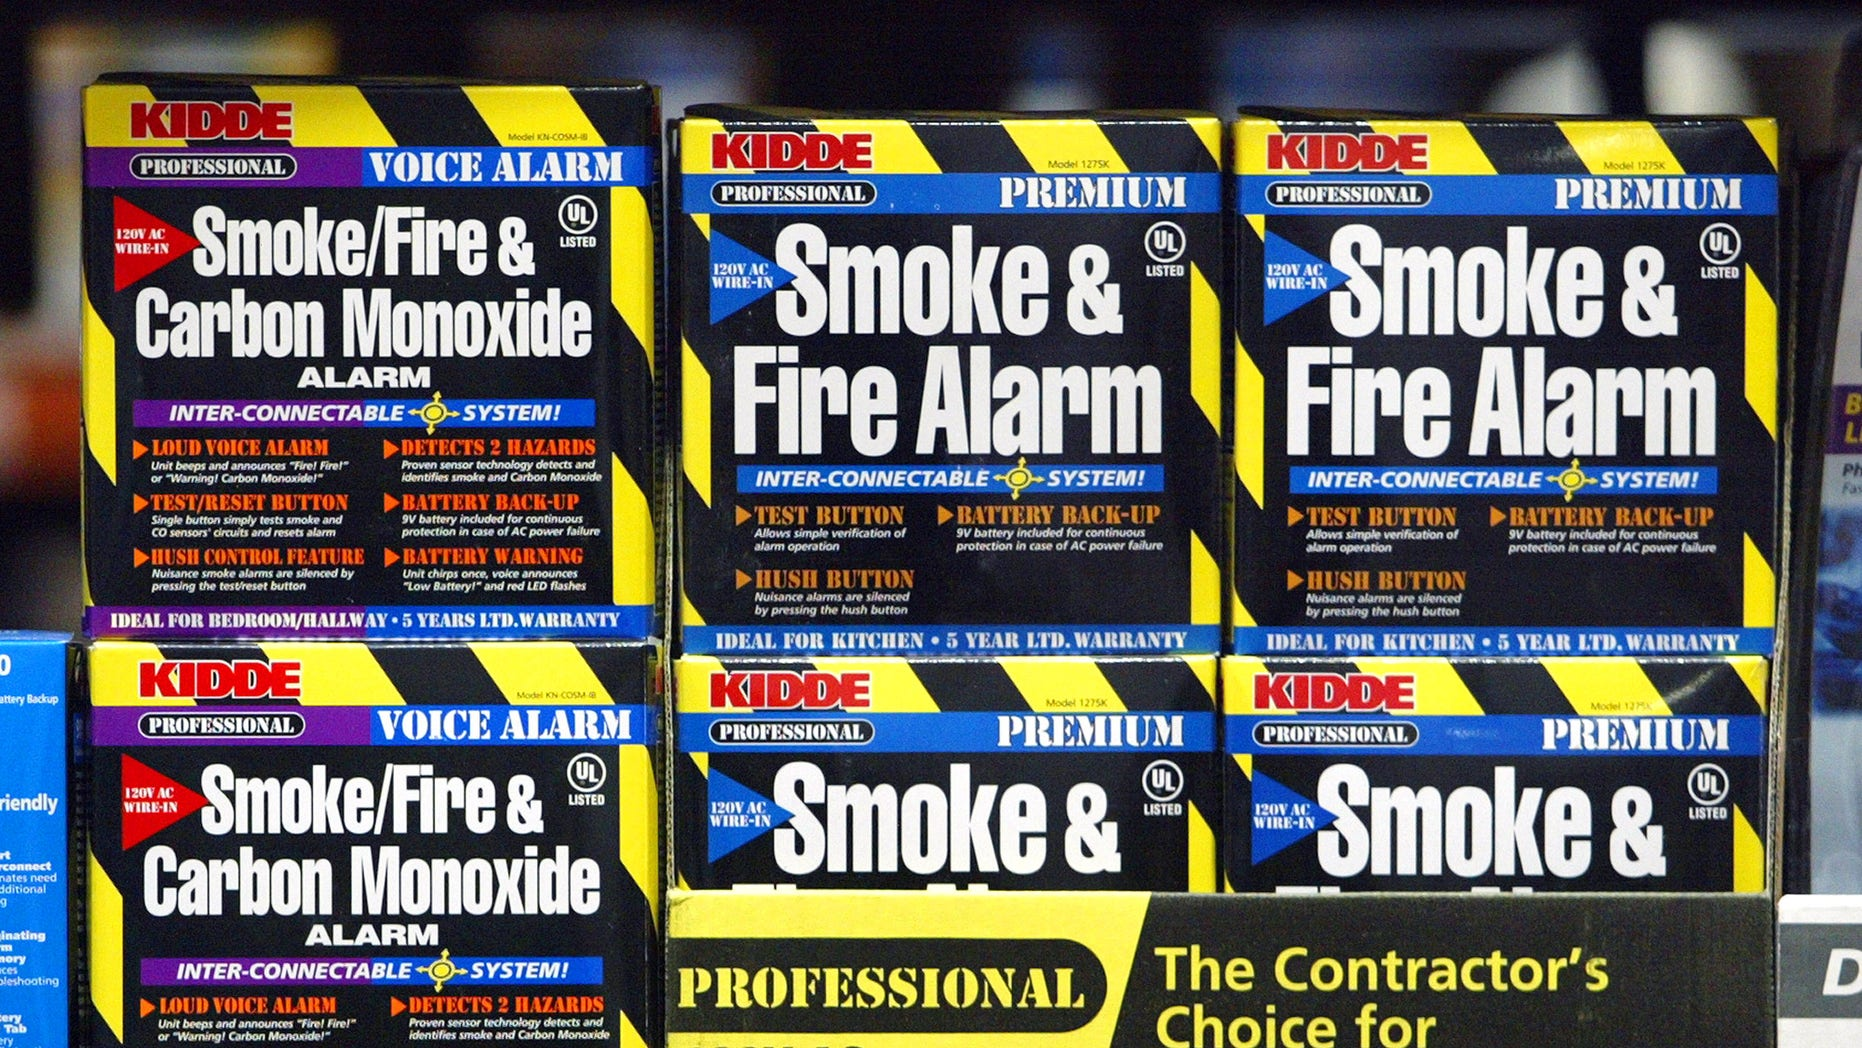 MOUNT PROSPECT, IL - FEBRUARY 19: Smoke, Fire & Carbon Monoxide alarms are displayed in a Home Depot store February 19, 2004 in Mount Prospect, Illinois. United States Consumer Product Safety Commission reports that about 125 carbon-monoxide-related deaths occur each year.  (Photo by Tim Boyle/Getty Images)